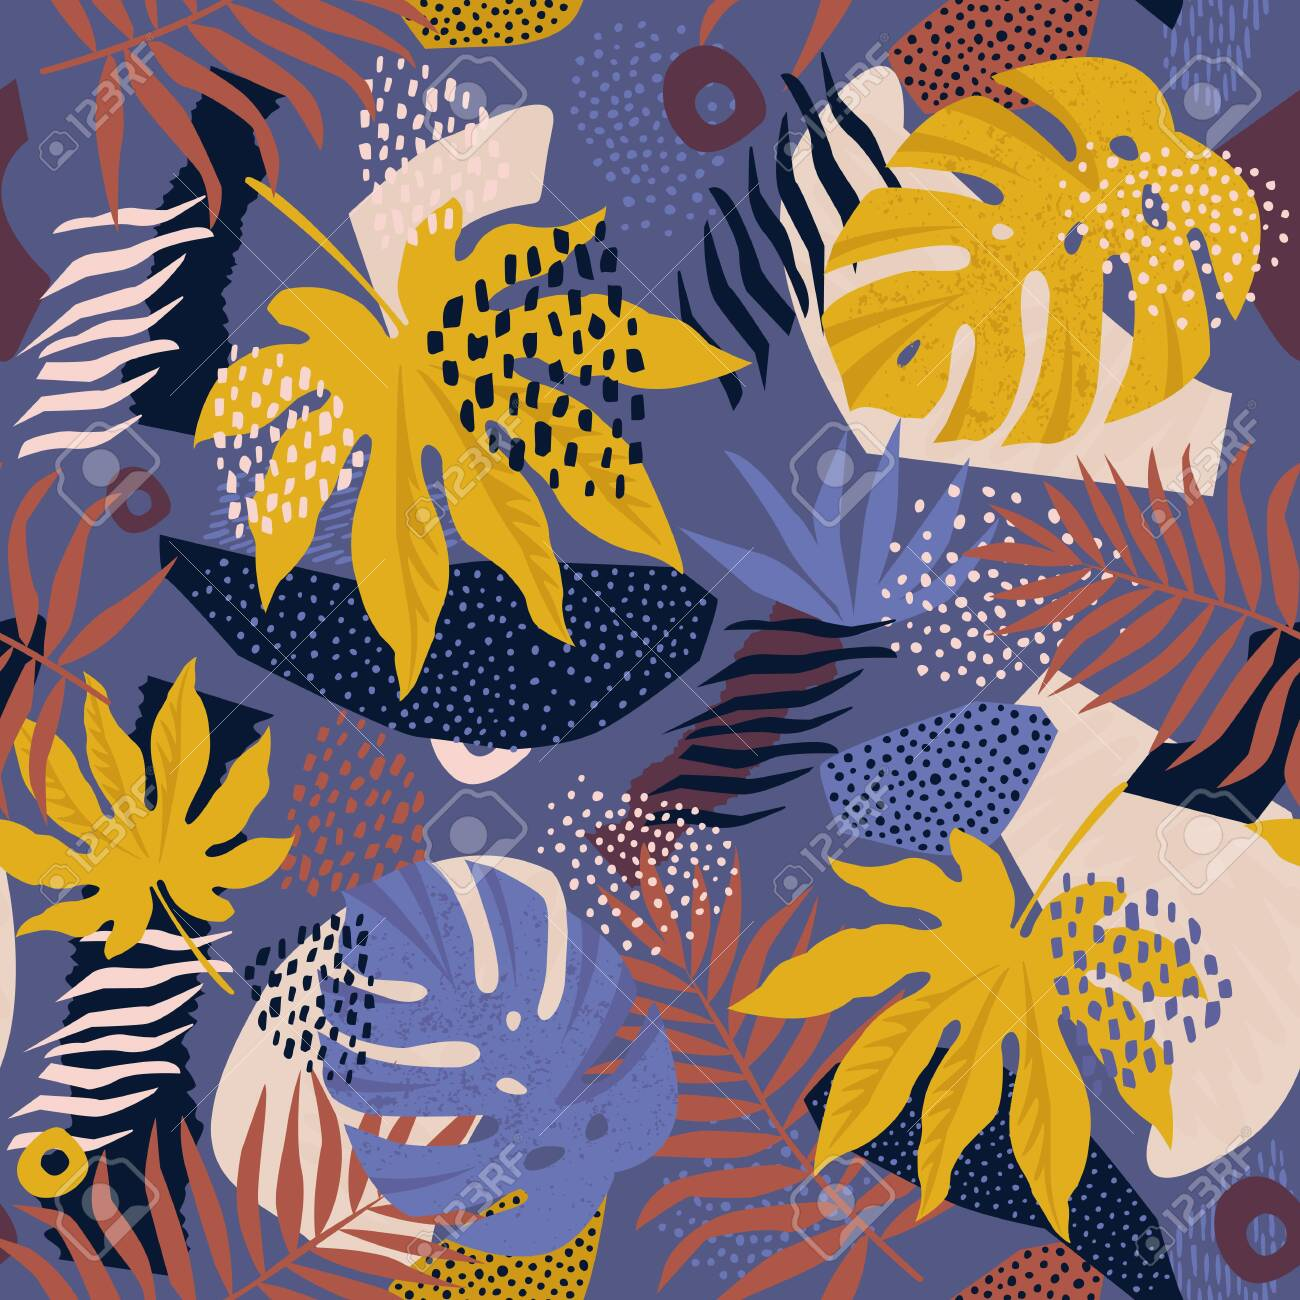 Collage contemporary floral hawaiian pattern in vector. Seamless surface design. - 132183407